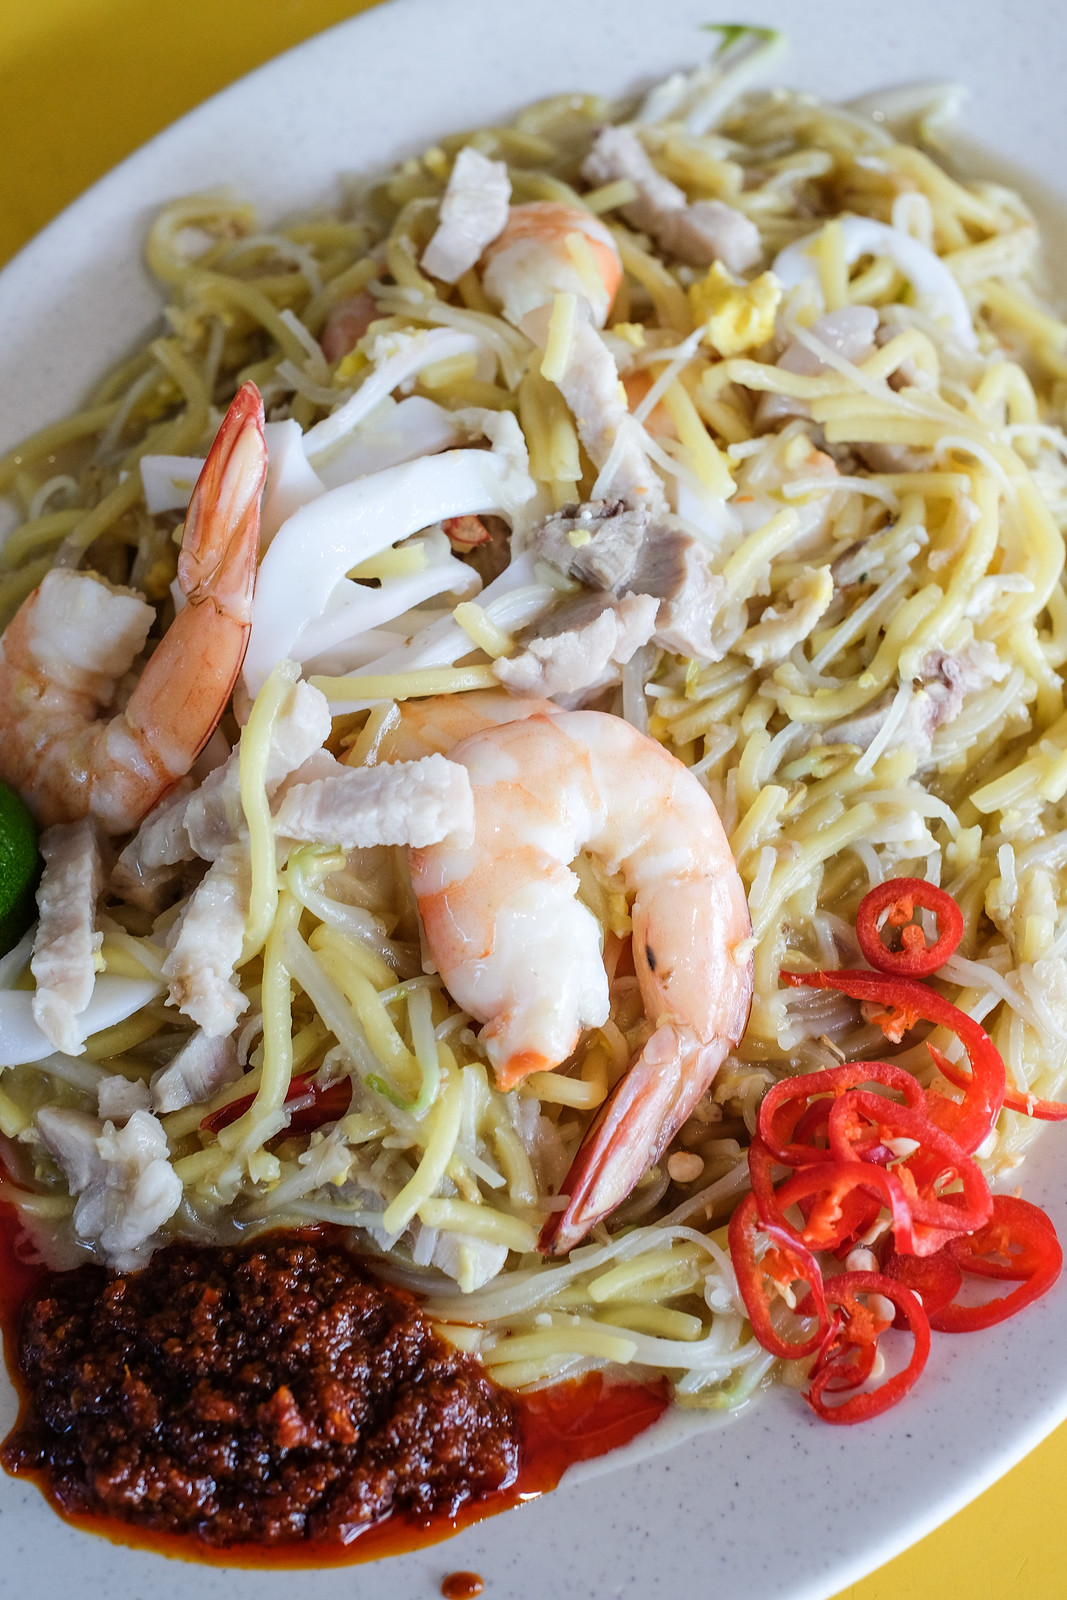 Havelock Road Blk 50 Fried Hokkien Prawn Mee